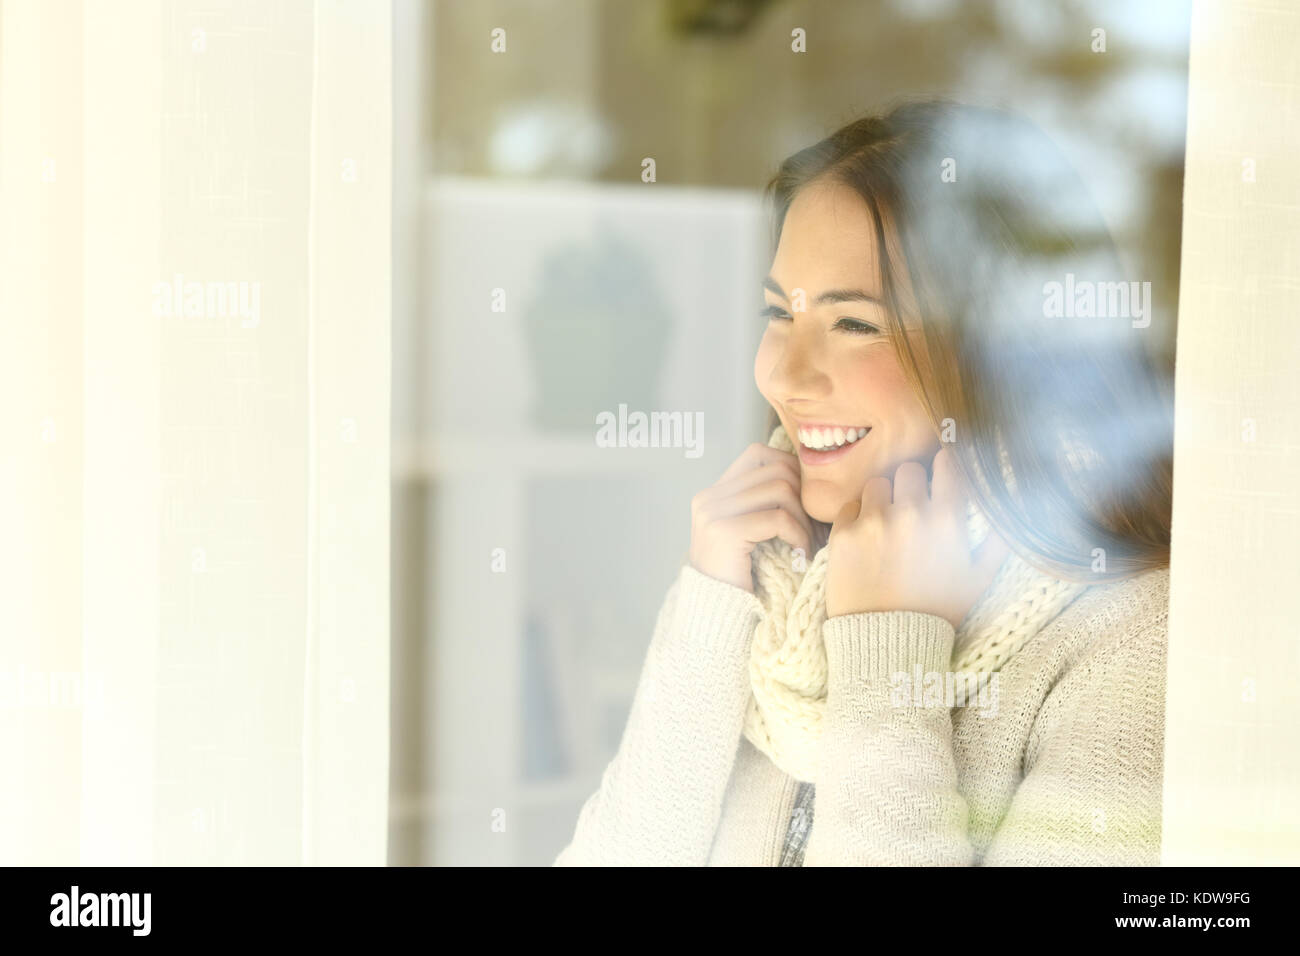 Happy woman warmly clothed looking outside through a window in winter at home or hotel room - Stock Image